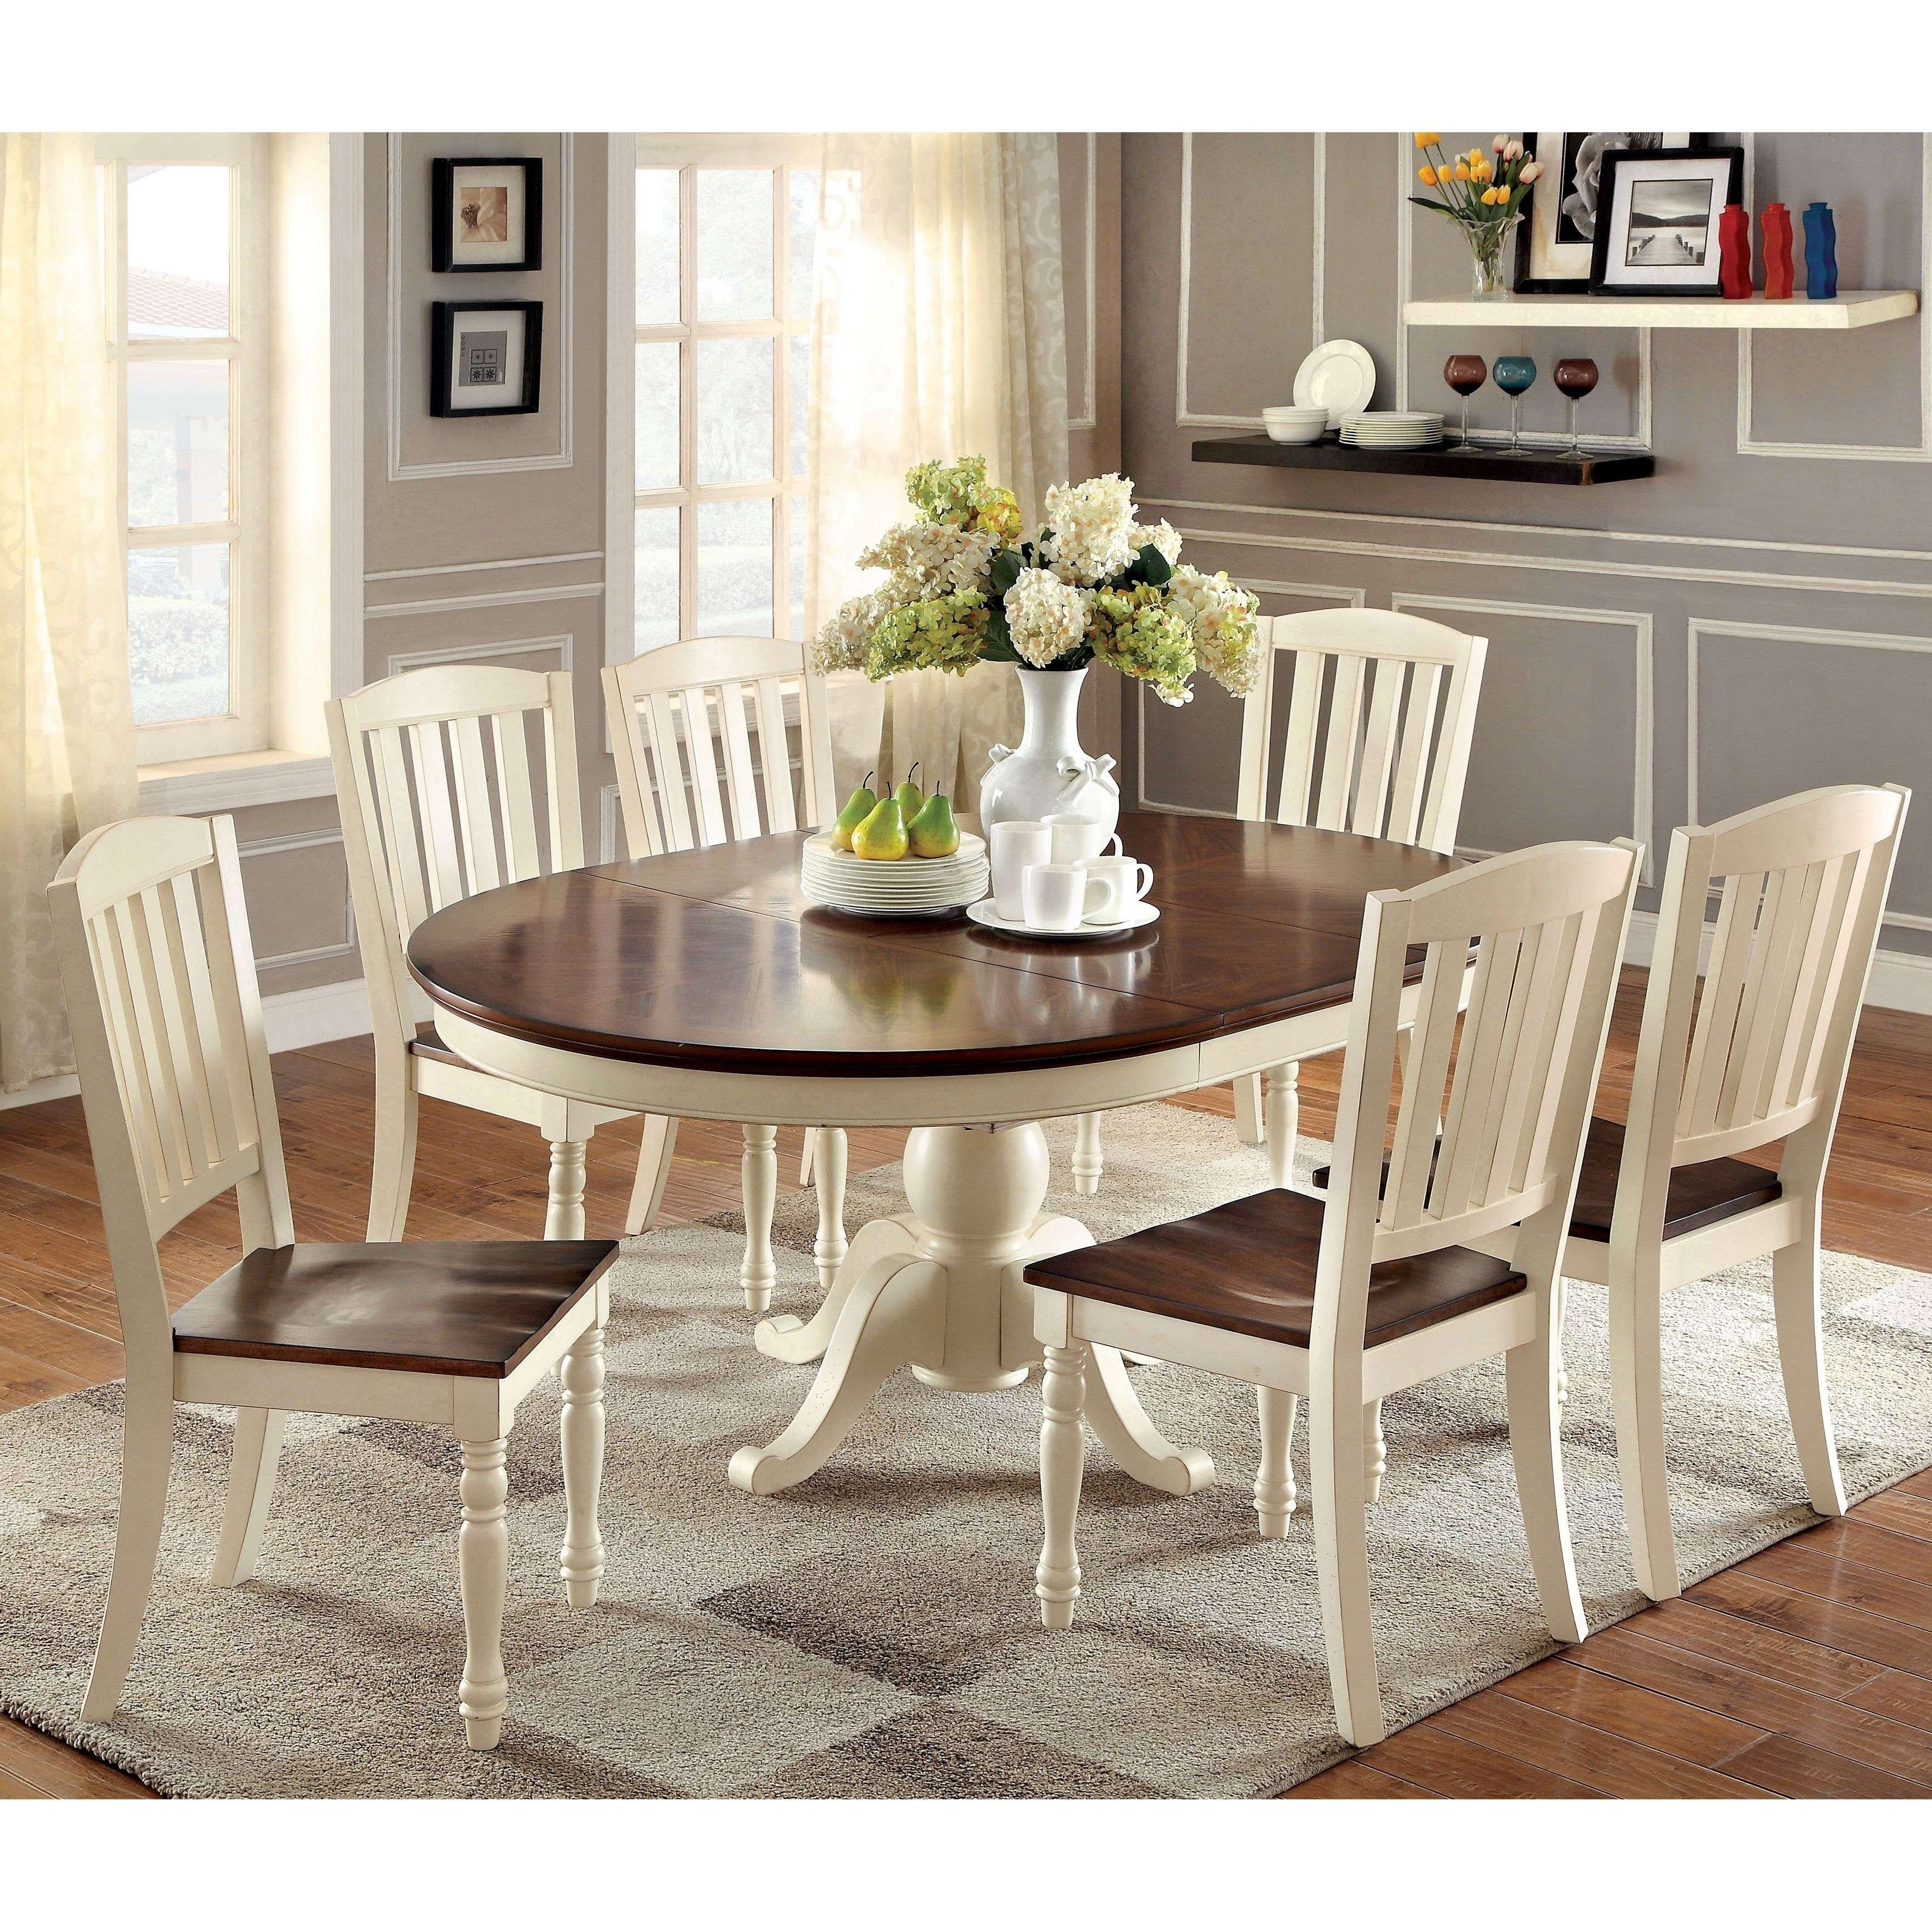 Small Round Dining Table With 4 Chairs Pertaining To Latest Small Round Dining Table For 4 Awesome Round Kitchen Table With  (View 17 of 25)